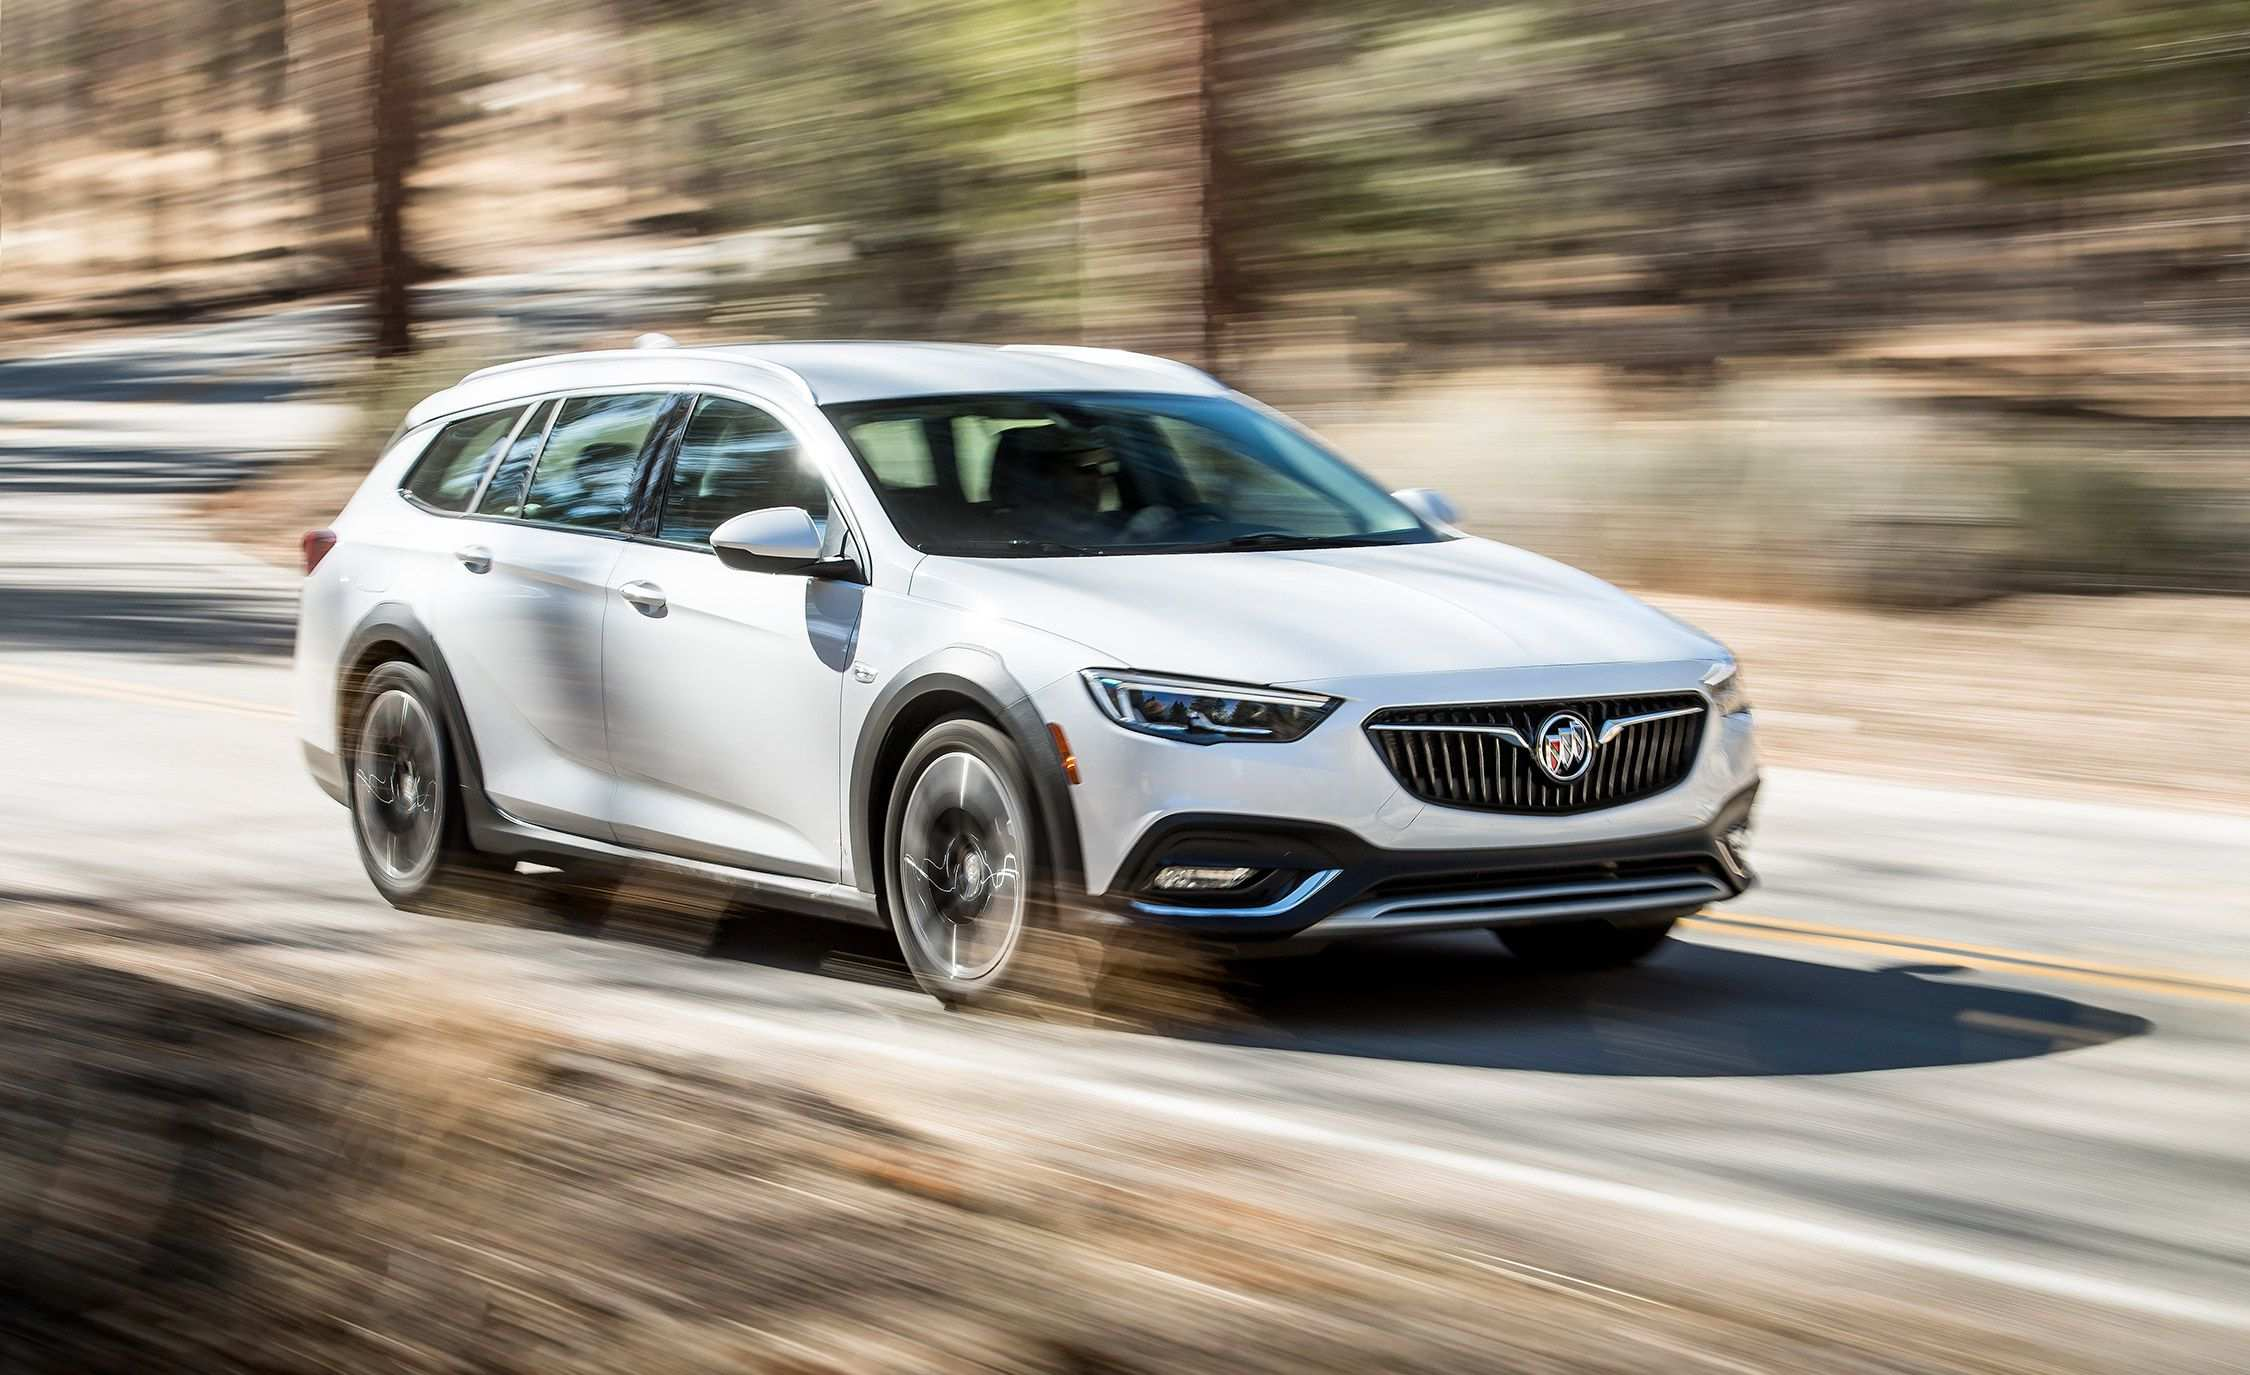 50 The New 2019 Buick Regal Tourx Redesign Engine with New 2019 Buick Regal Tourx Redesign